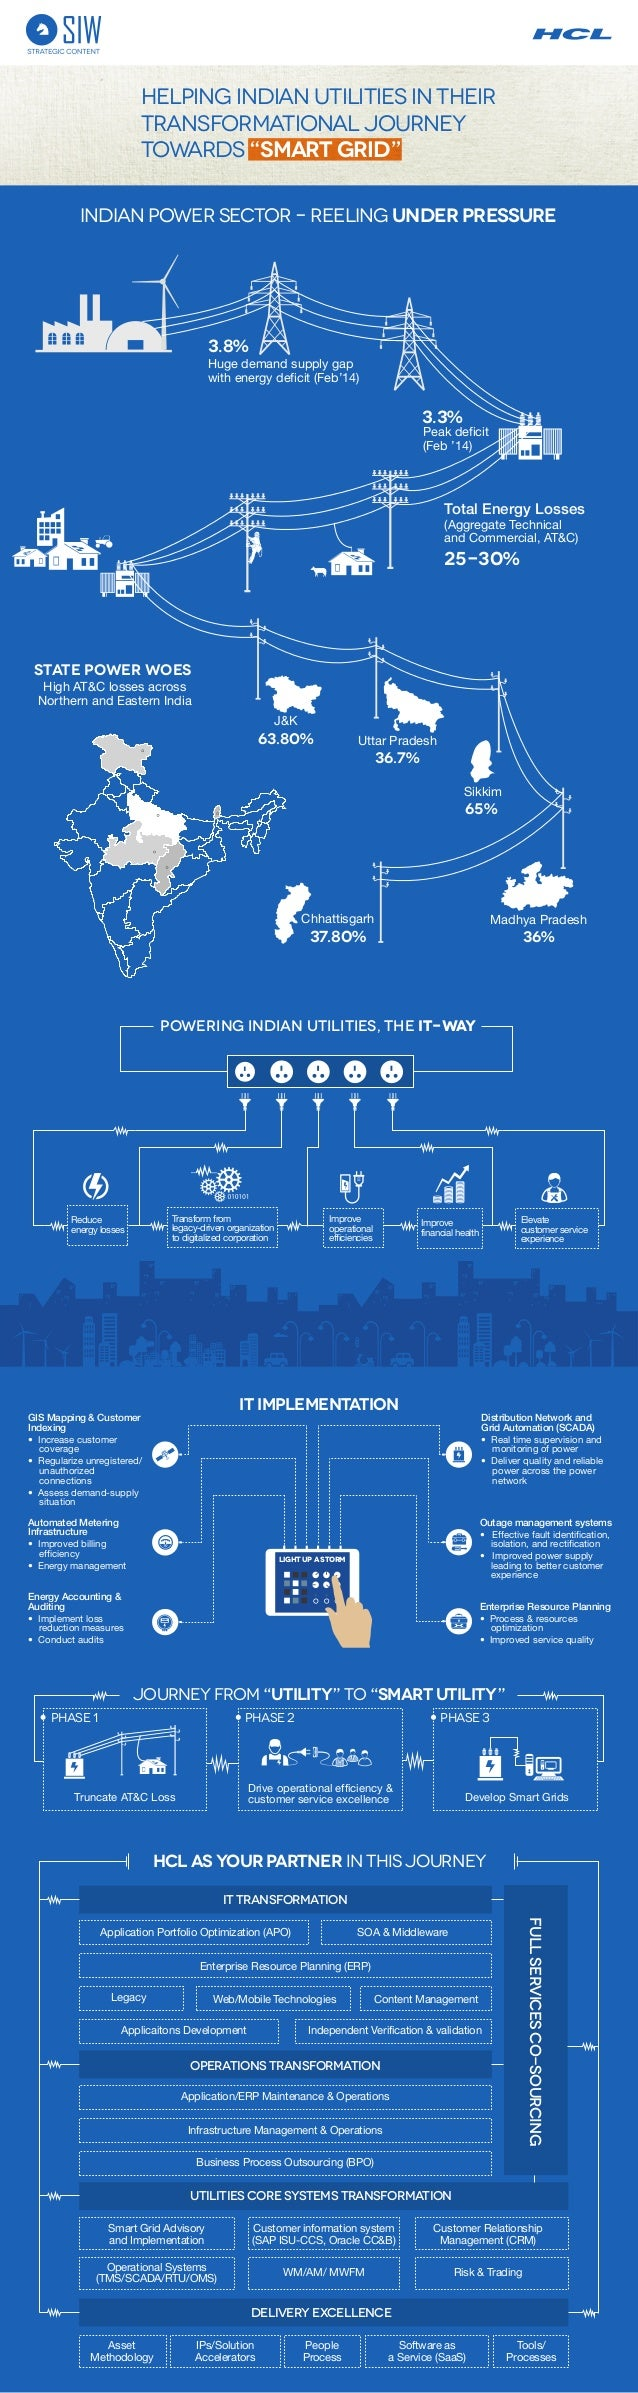 """HCL : Helping Indian Utilities in their transformational journey towards """"Smart Grid"""""""